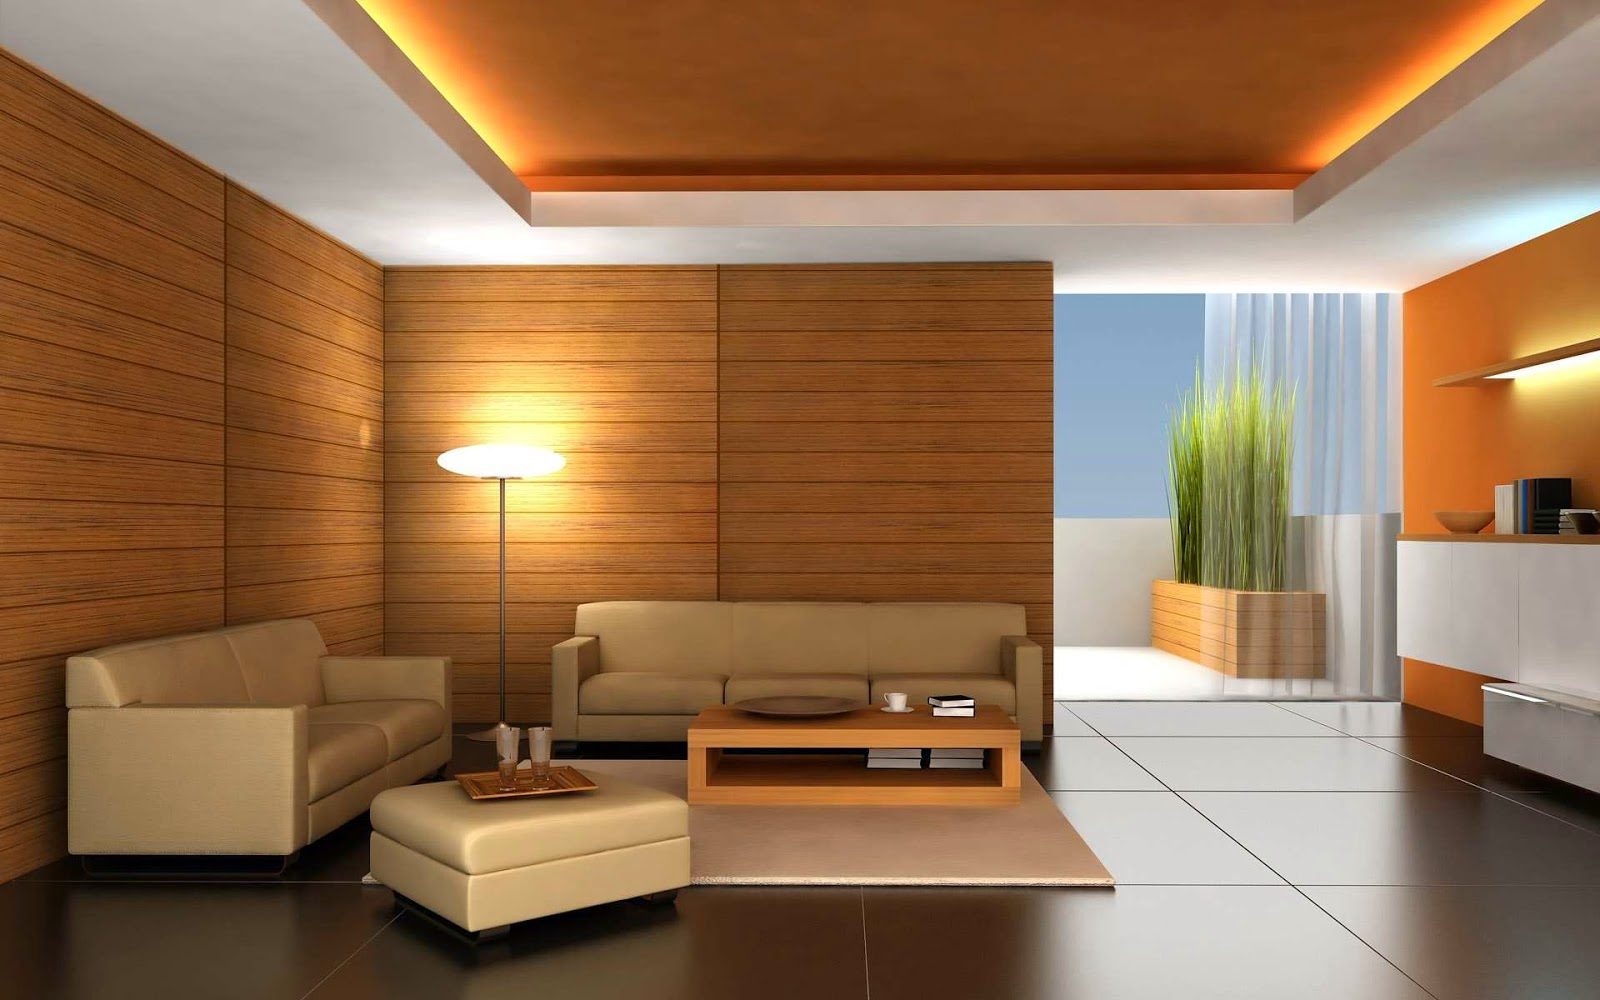 How to choose a color for the interior minimalist home